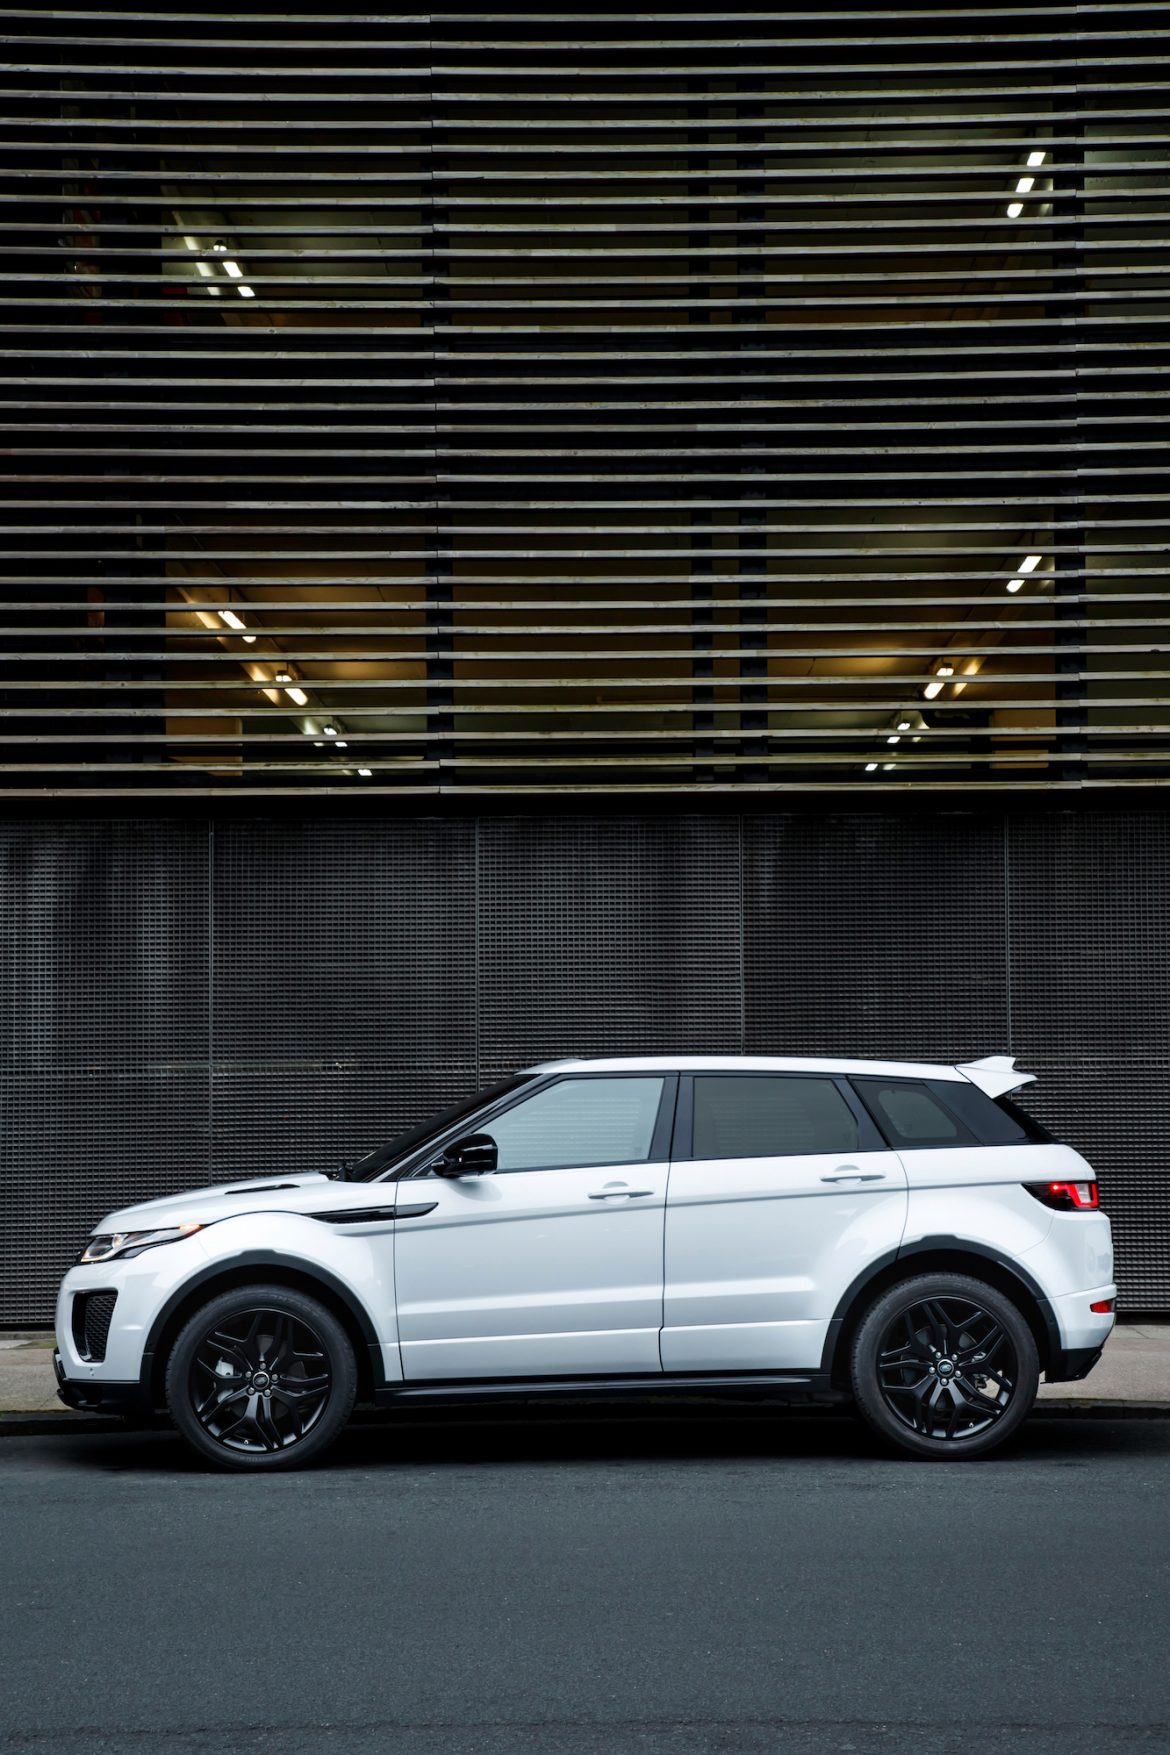 range rover evoque speed bump ad cars life cars fashion lifestyle blog. Black Bedroom Furniture Sets. Home Design Ideas